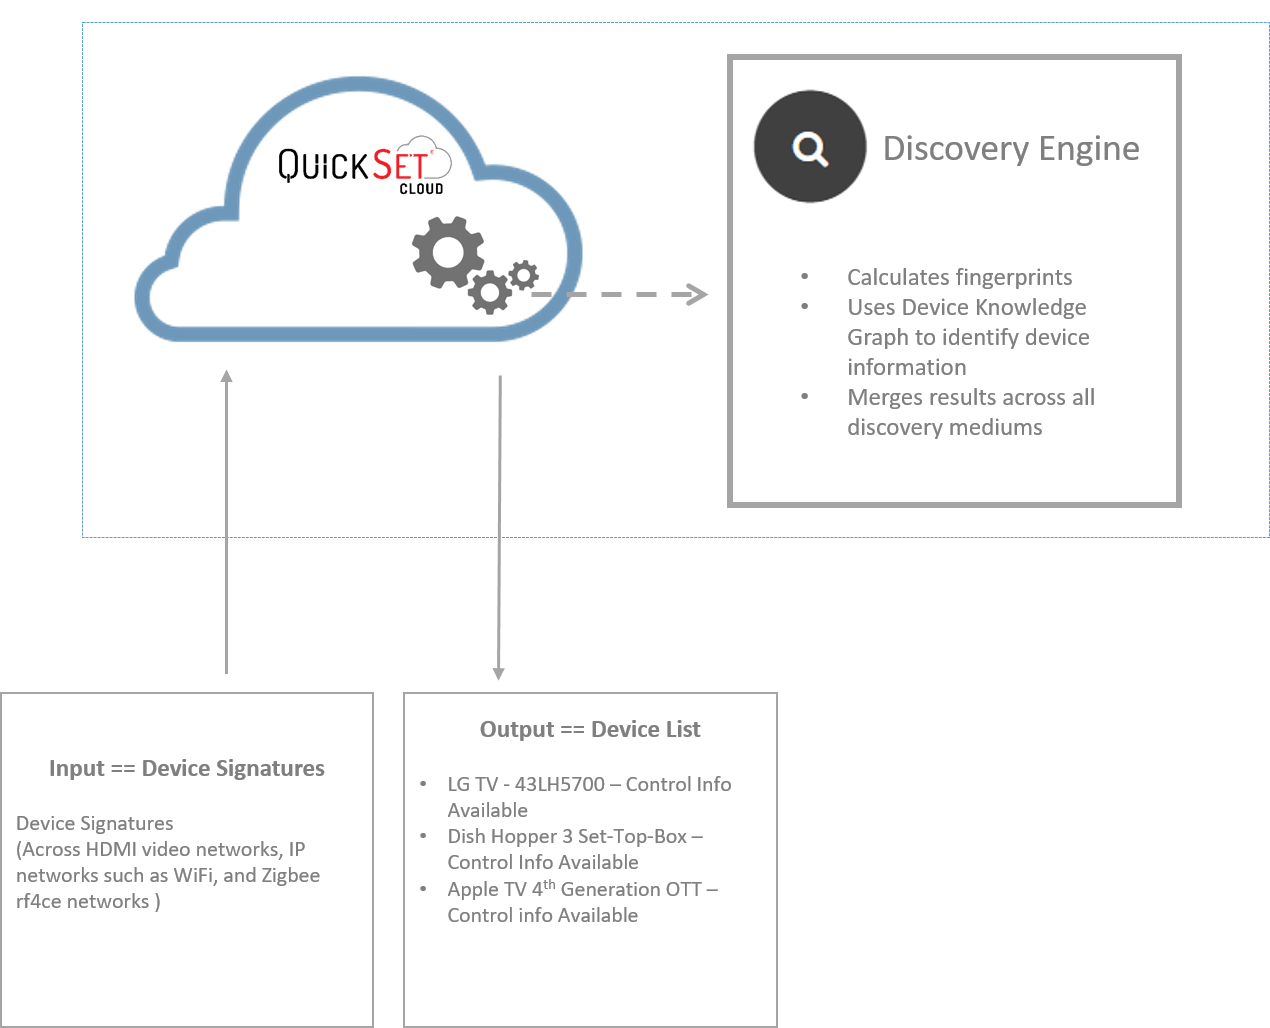 Technology - QuickSet Cloud